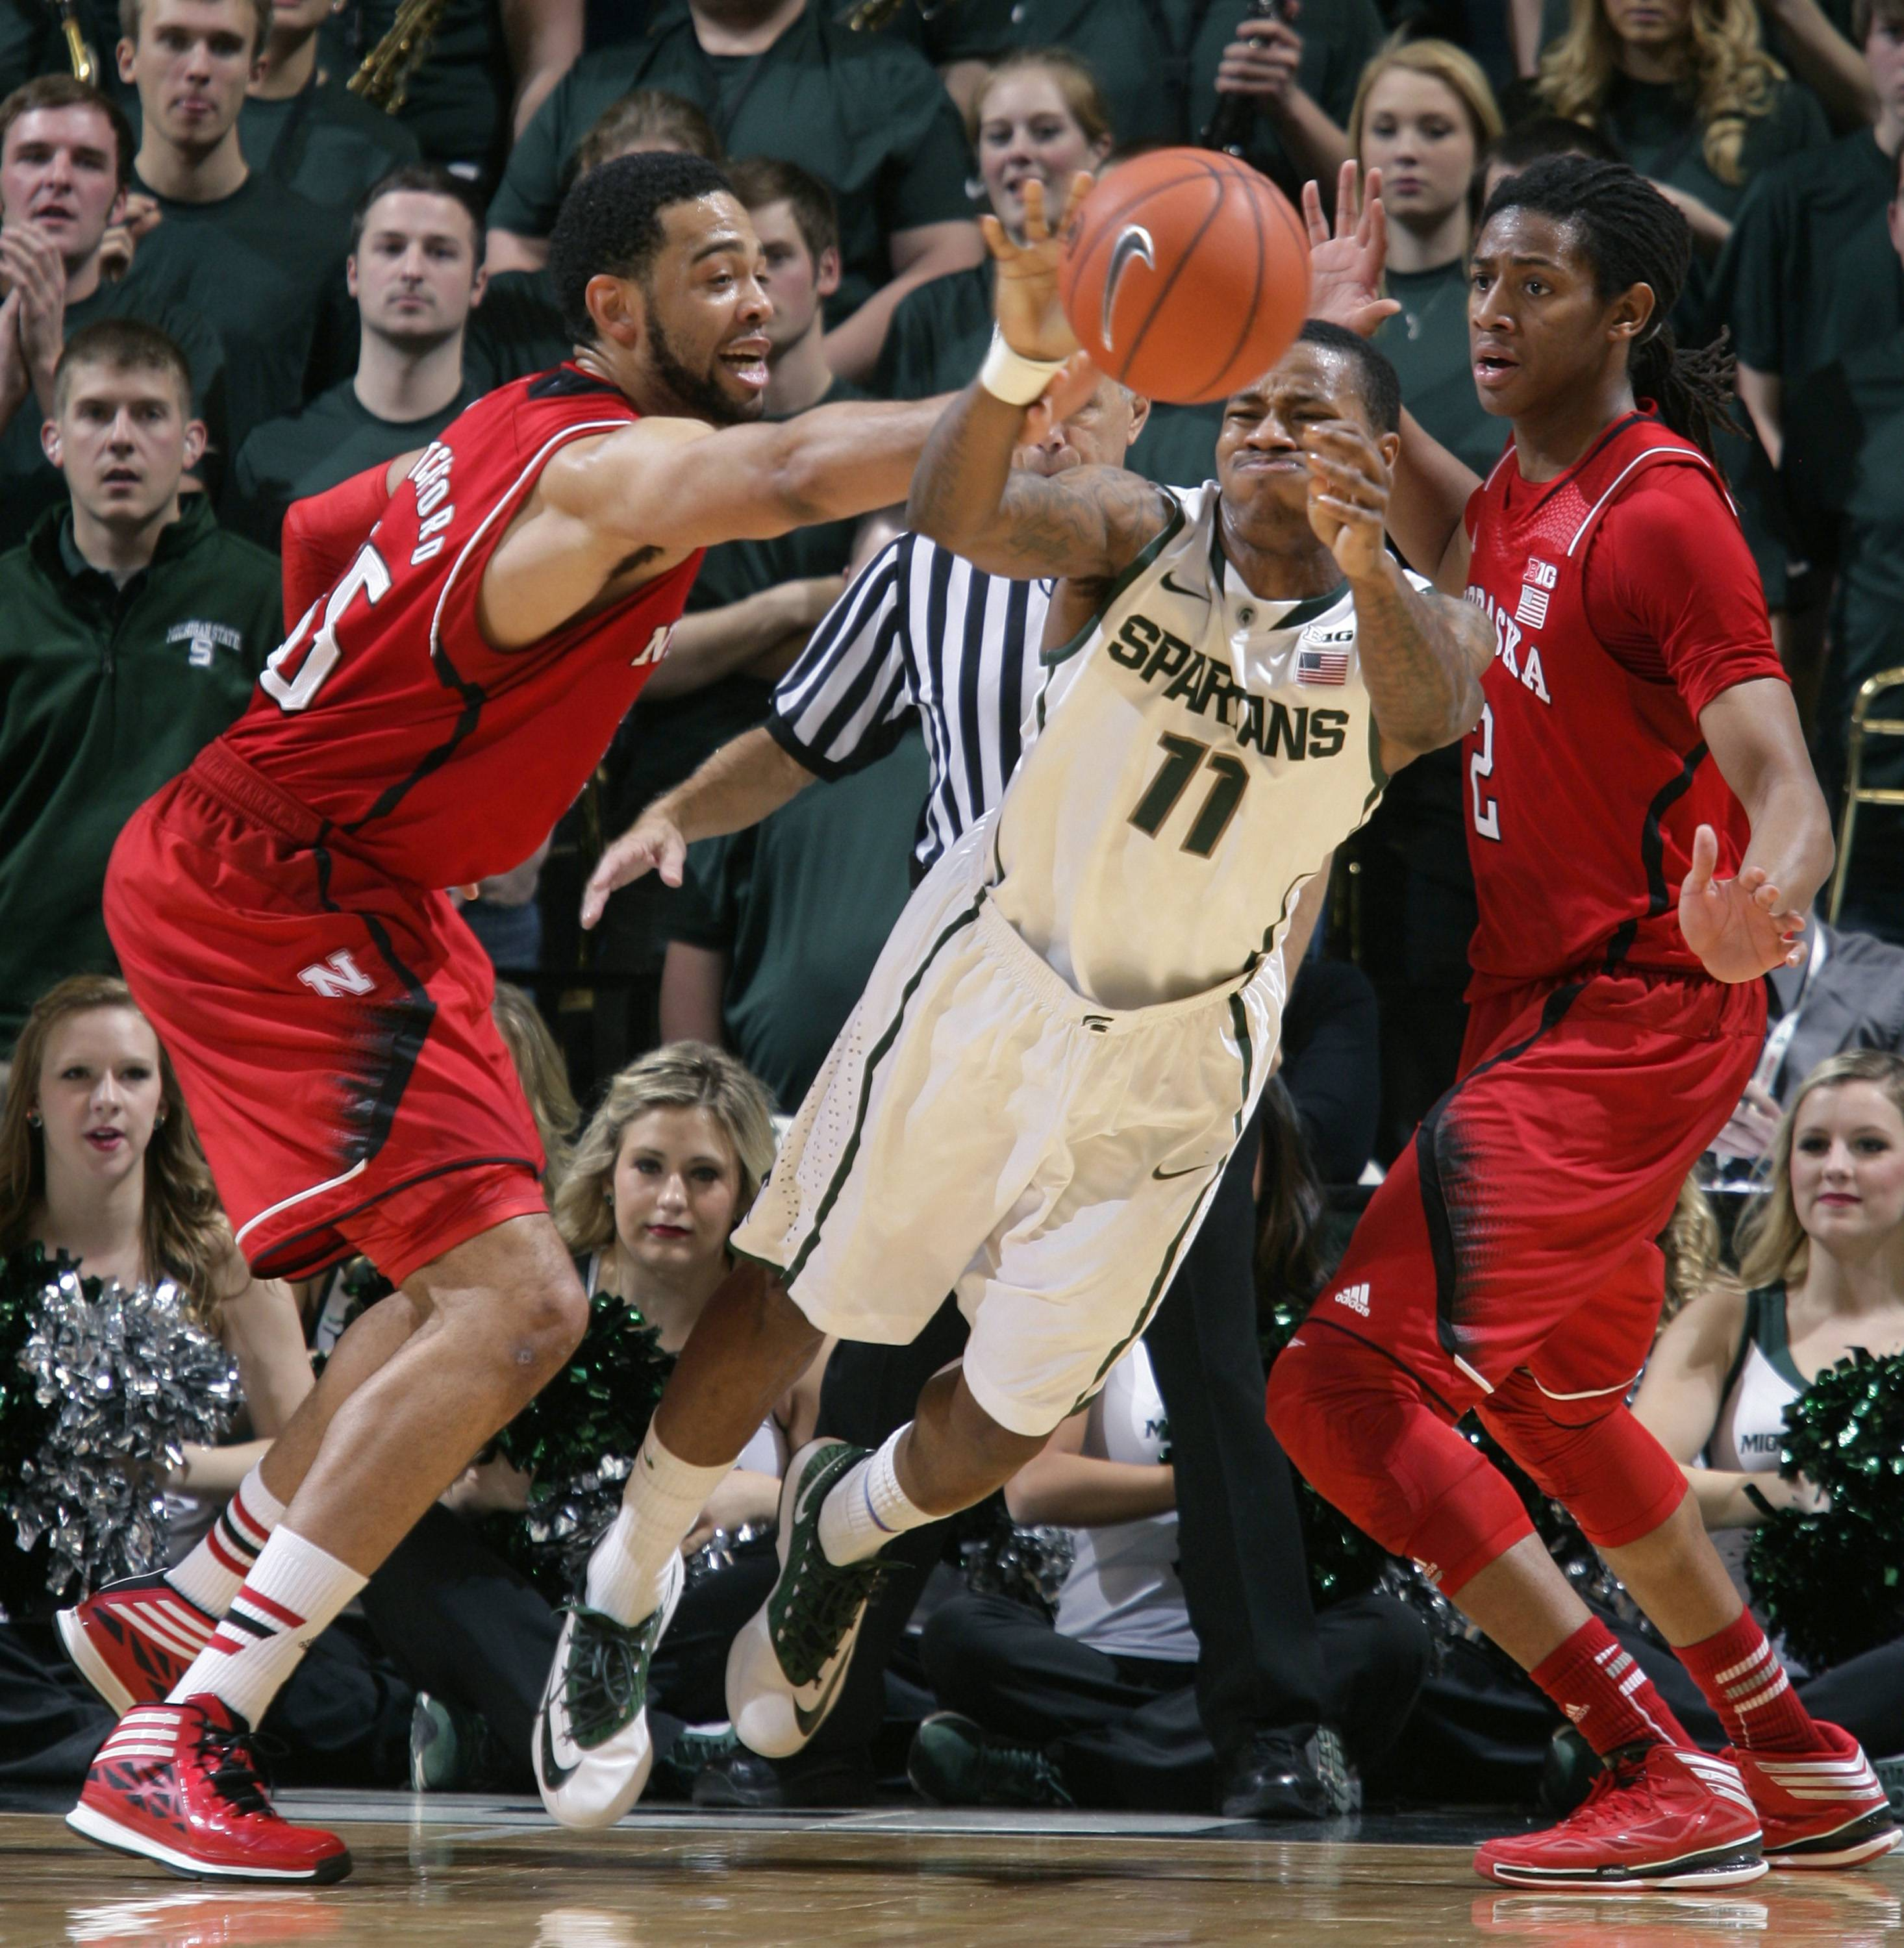 Michigan State's Keith Appling (11) tries to pass away from pressure by Nebraska's Walter Pitchford, left, and David Rivers during the first half of an NCAA college basketball game on Sunday, Feb. 16, 2014, in East Lansing, Mich.